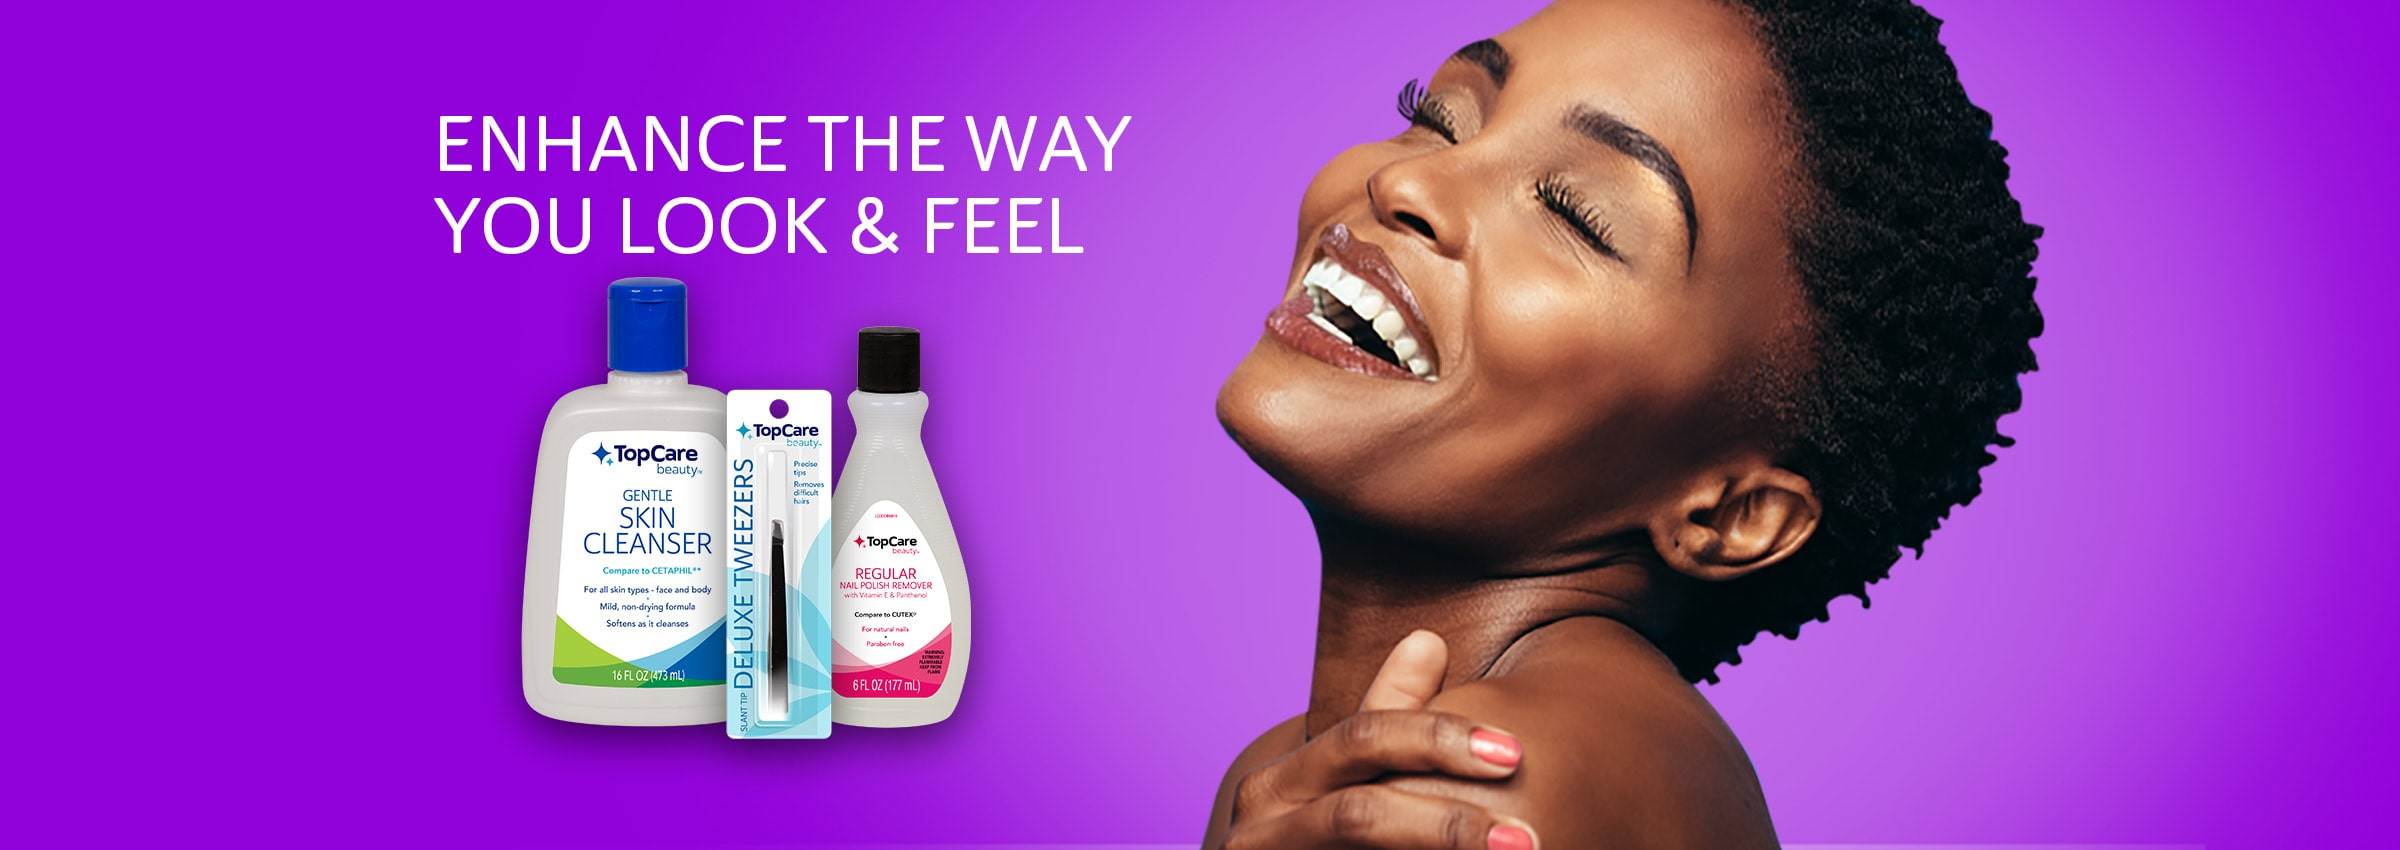 Enhance the way you look and feel